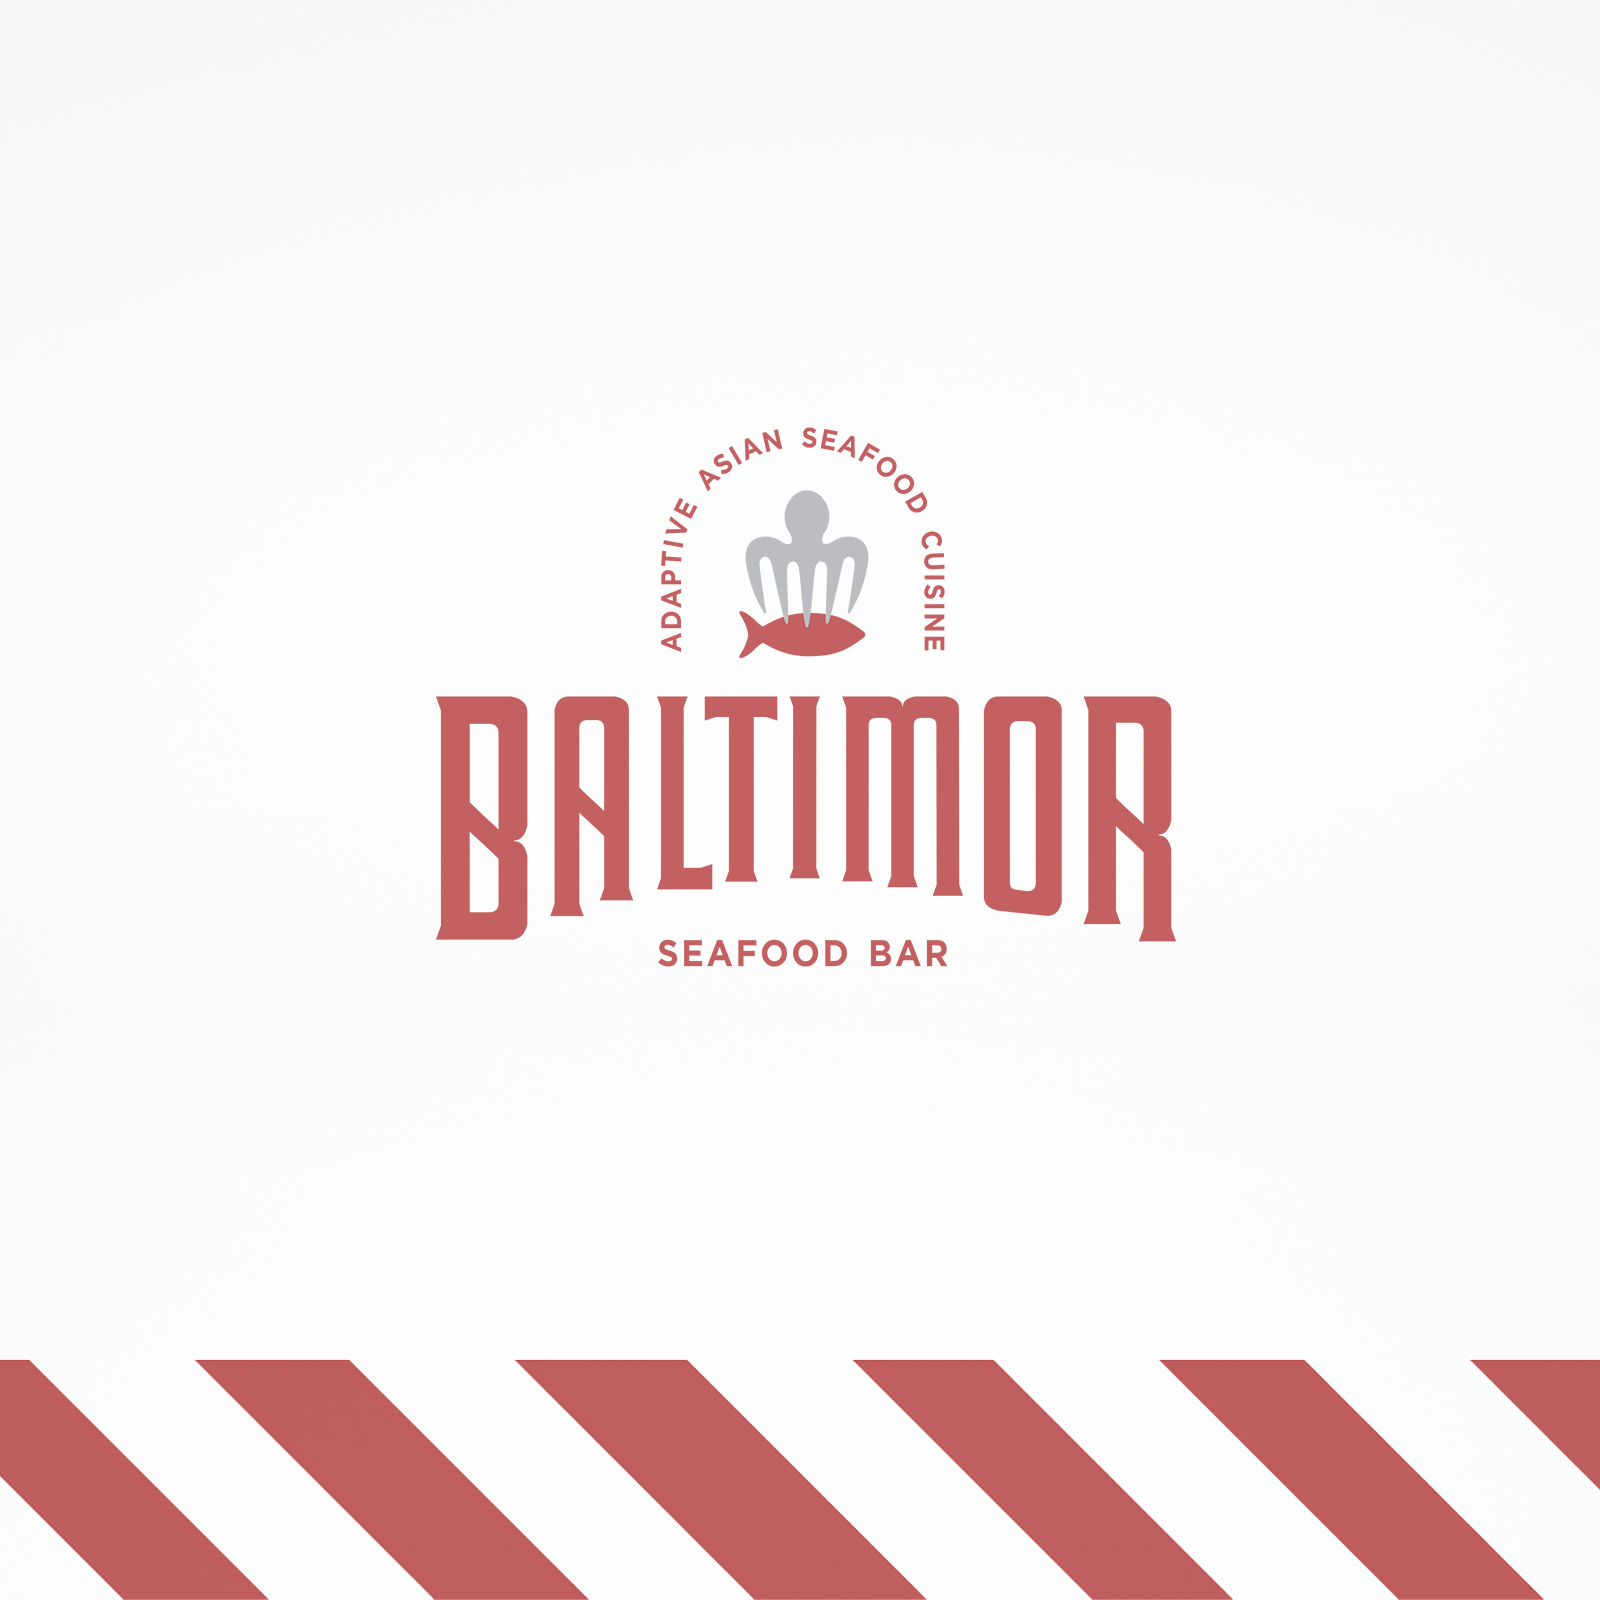 BALTIMOR Seafood Bar